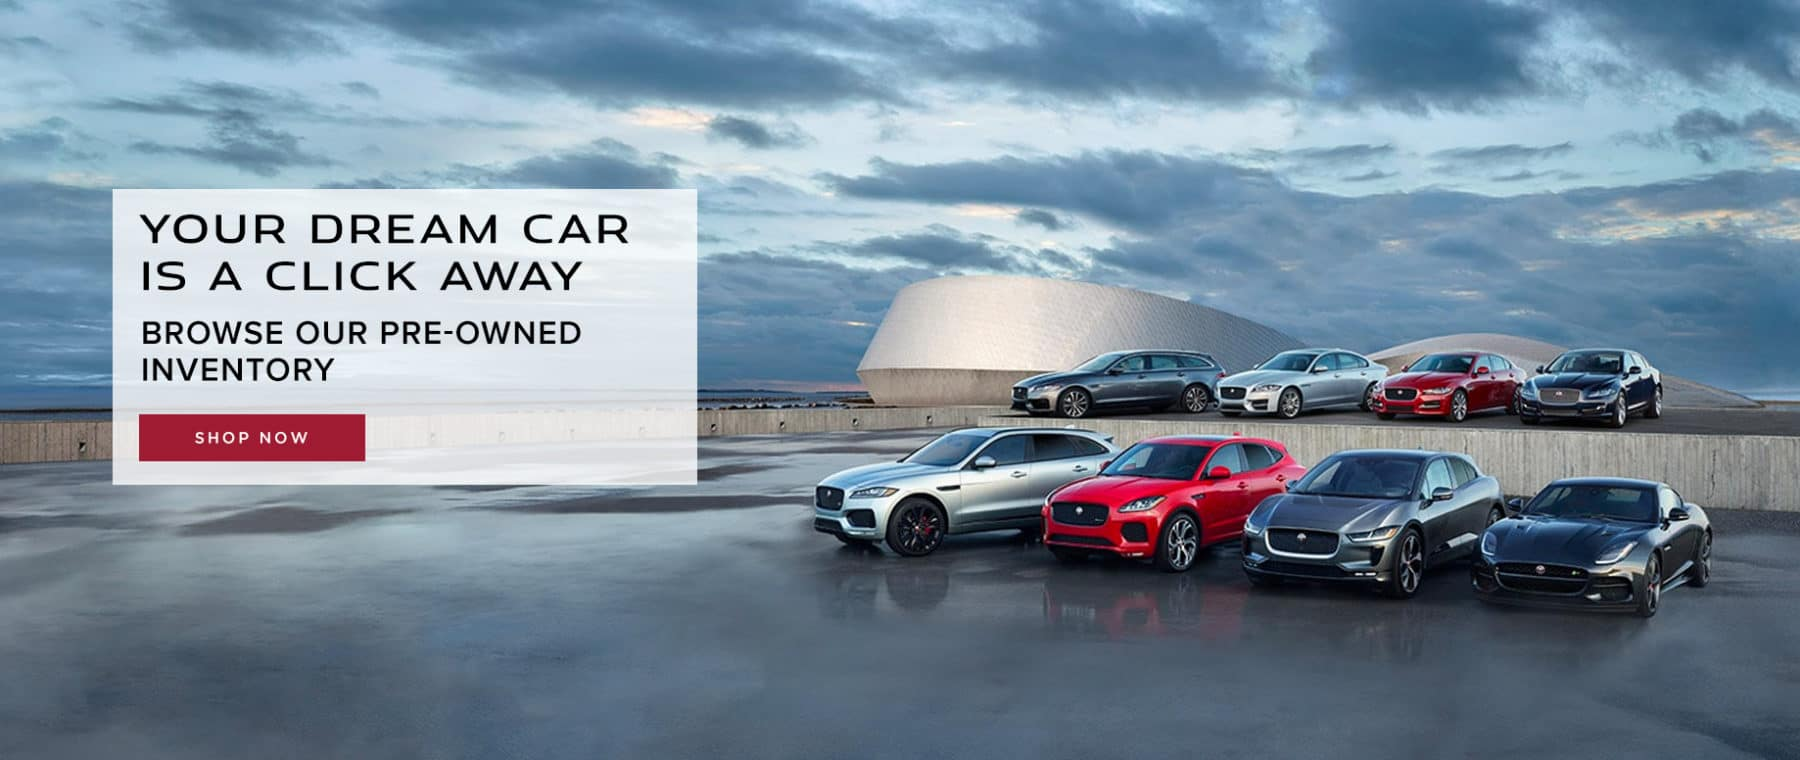 Your Dream Car Is A Click Away Browse Our Pre-Owned Inventory